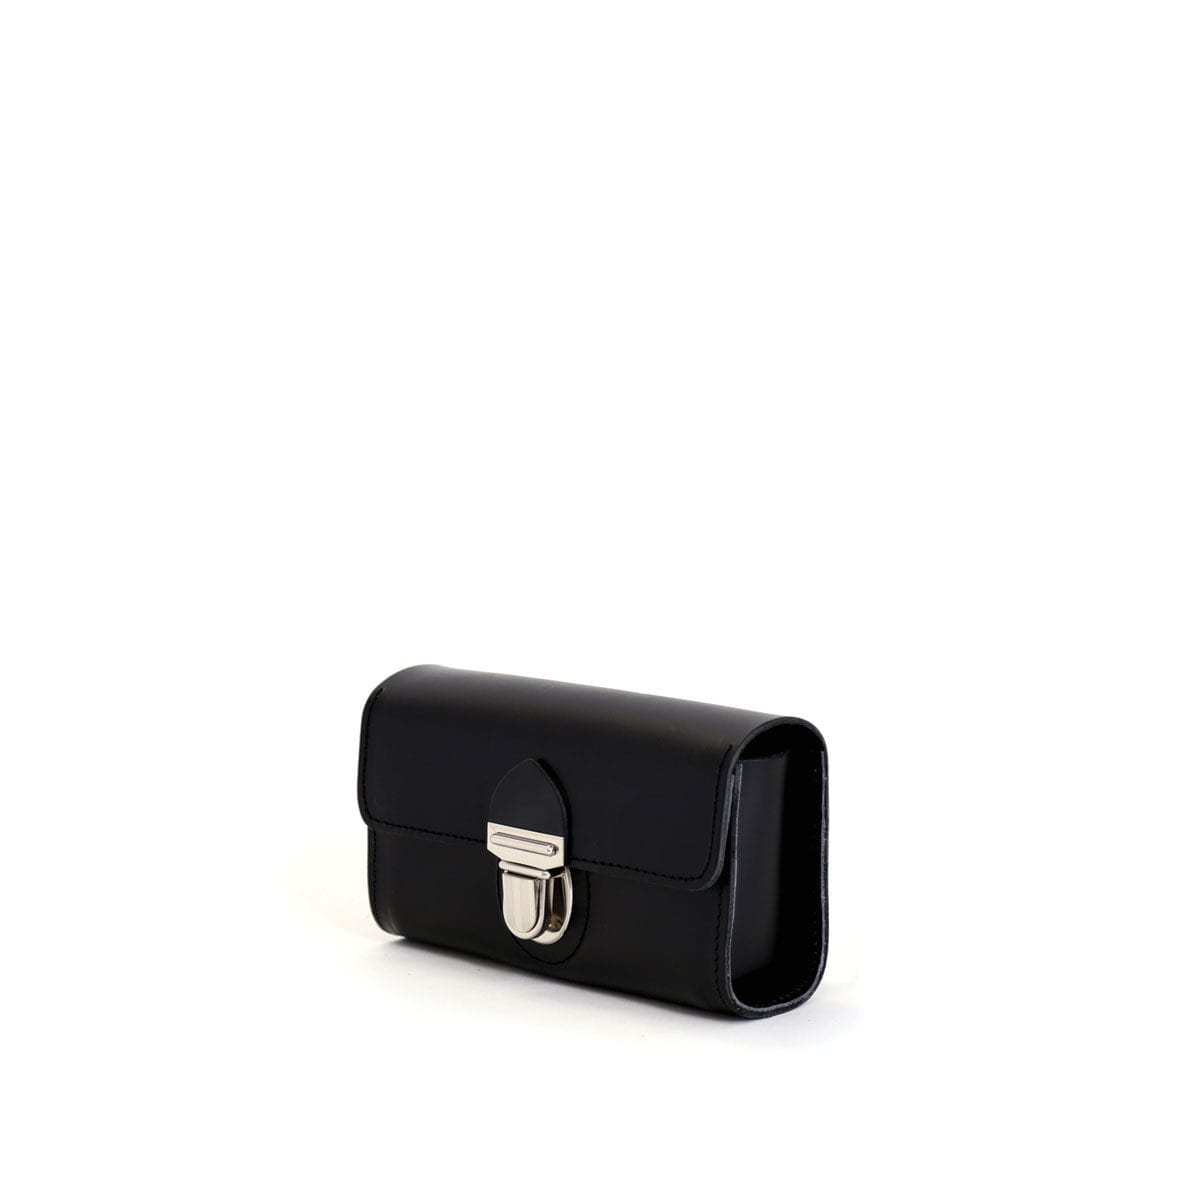 LUMI Kukka Evening Pouch, in black, is created using natural vegetable tanned cow leather. The color will naturally change over time.